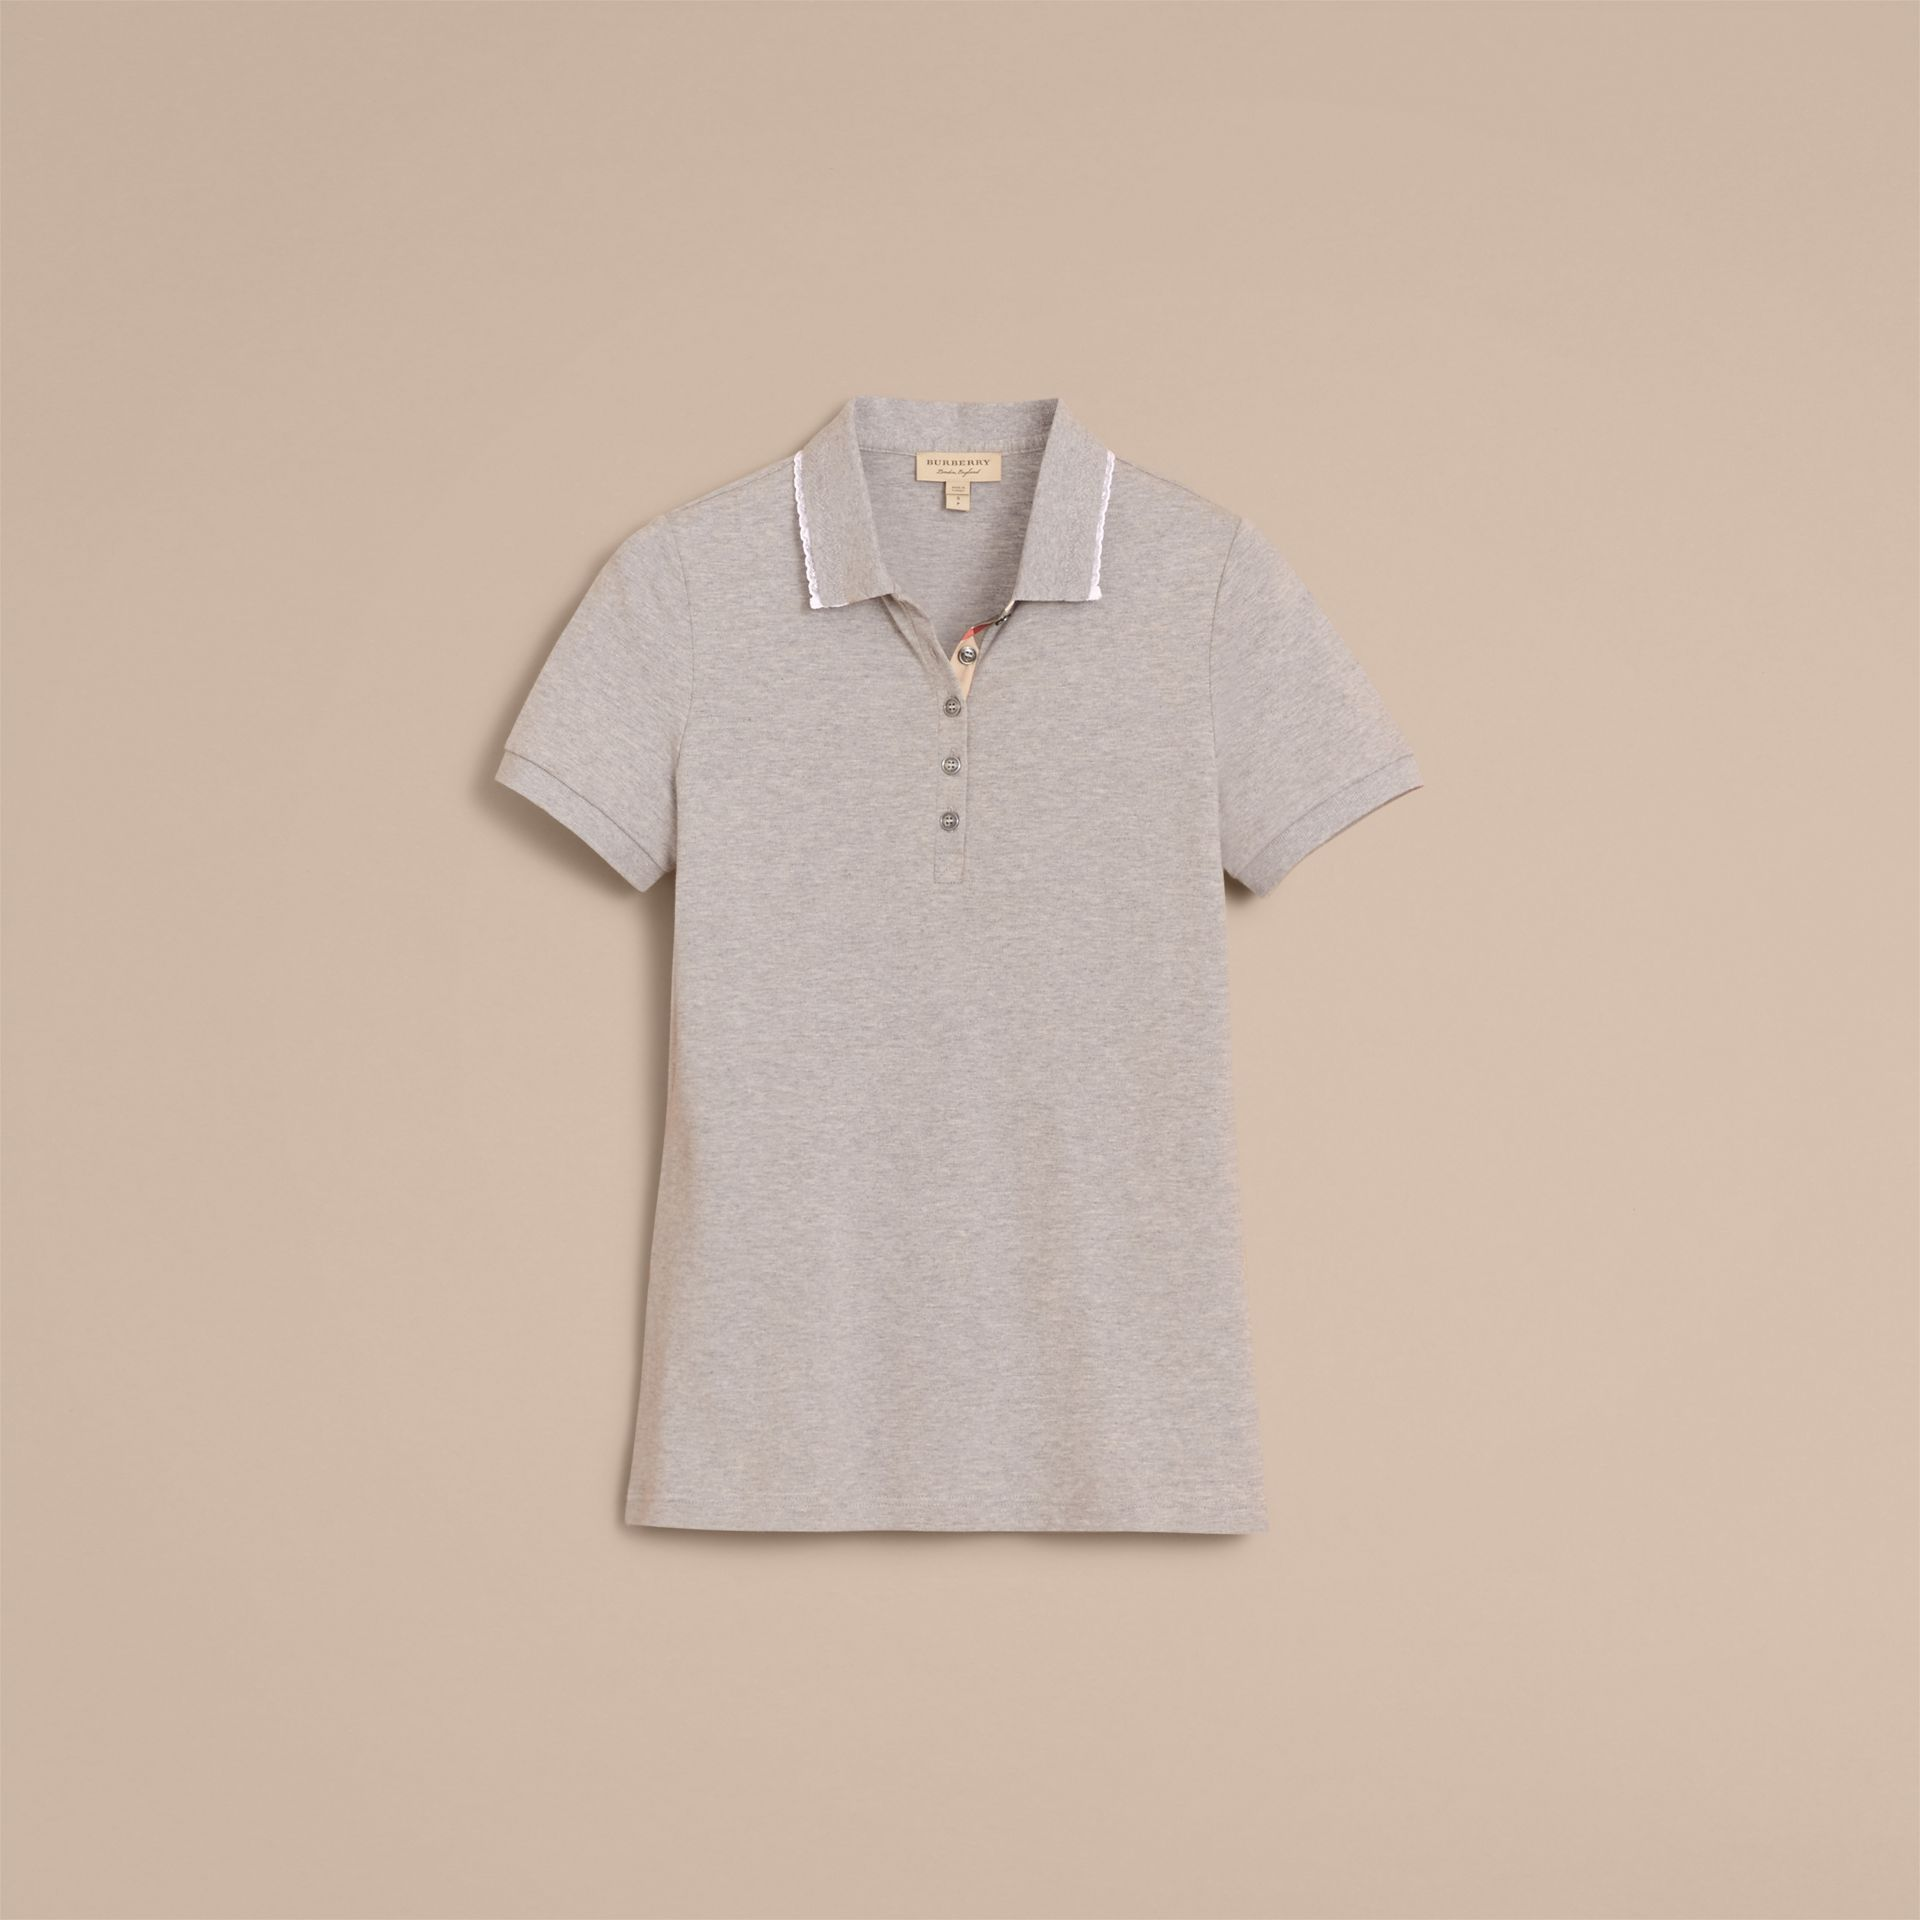 Lace Trim Cotton Blend Polo Shirt with Check Detail in Pale Grey Melange - Women | Burberry Australia - gallery image 4